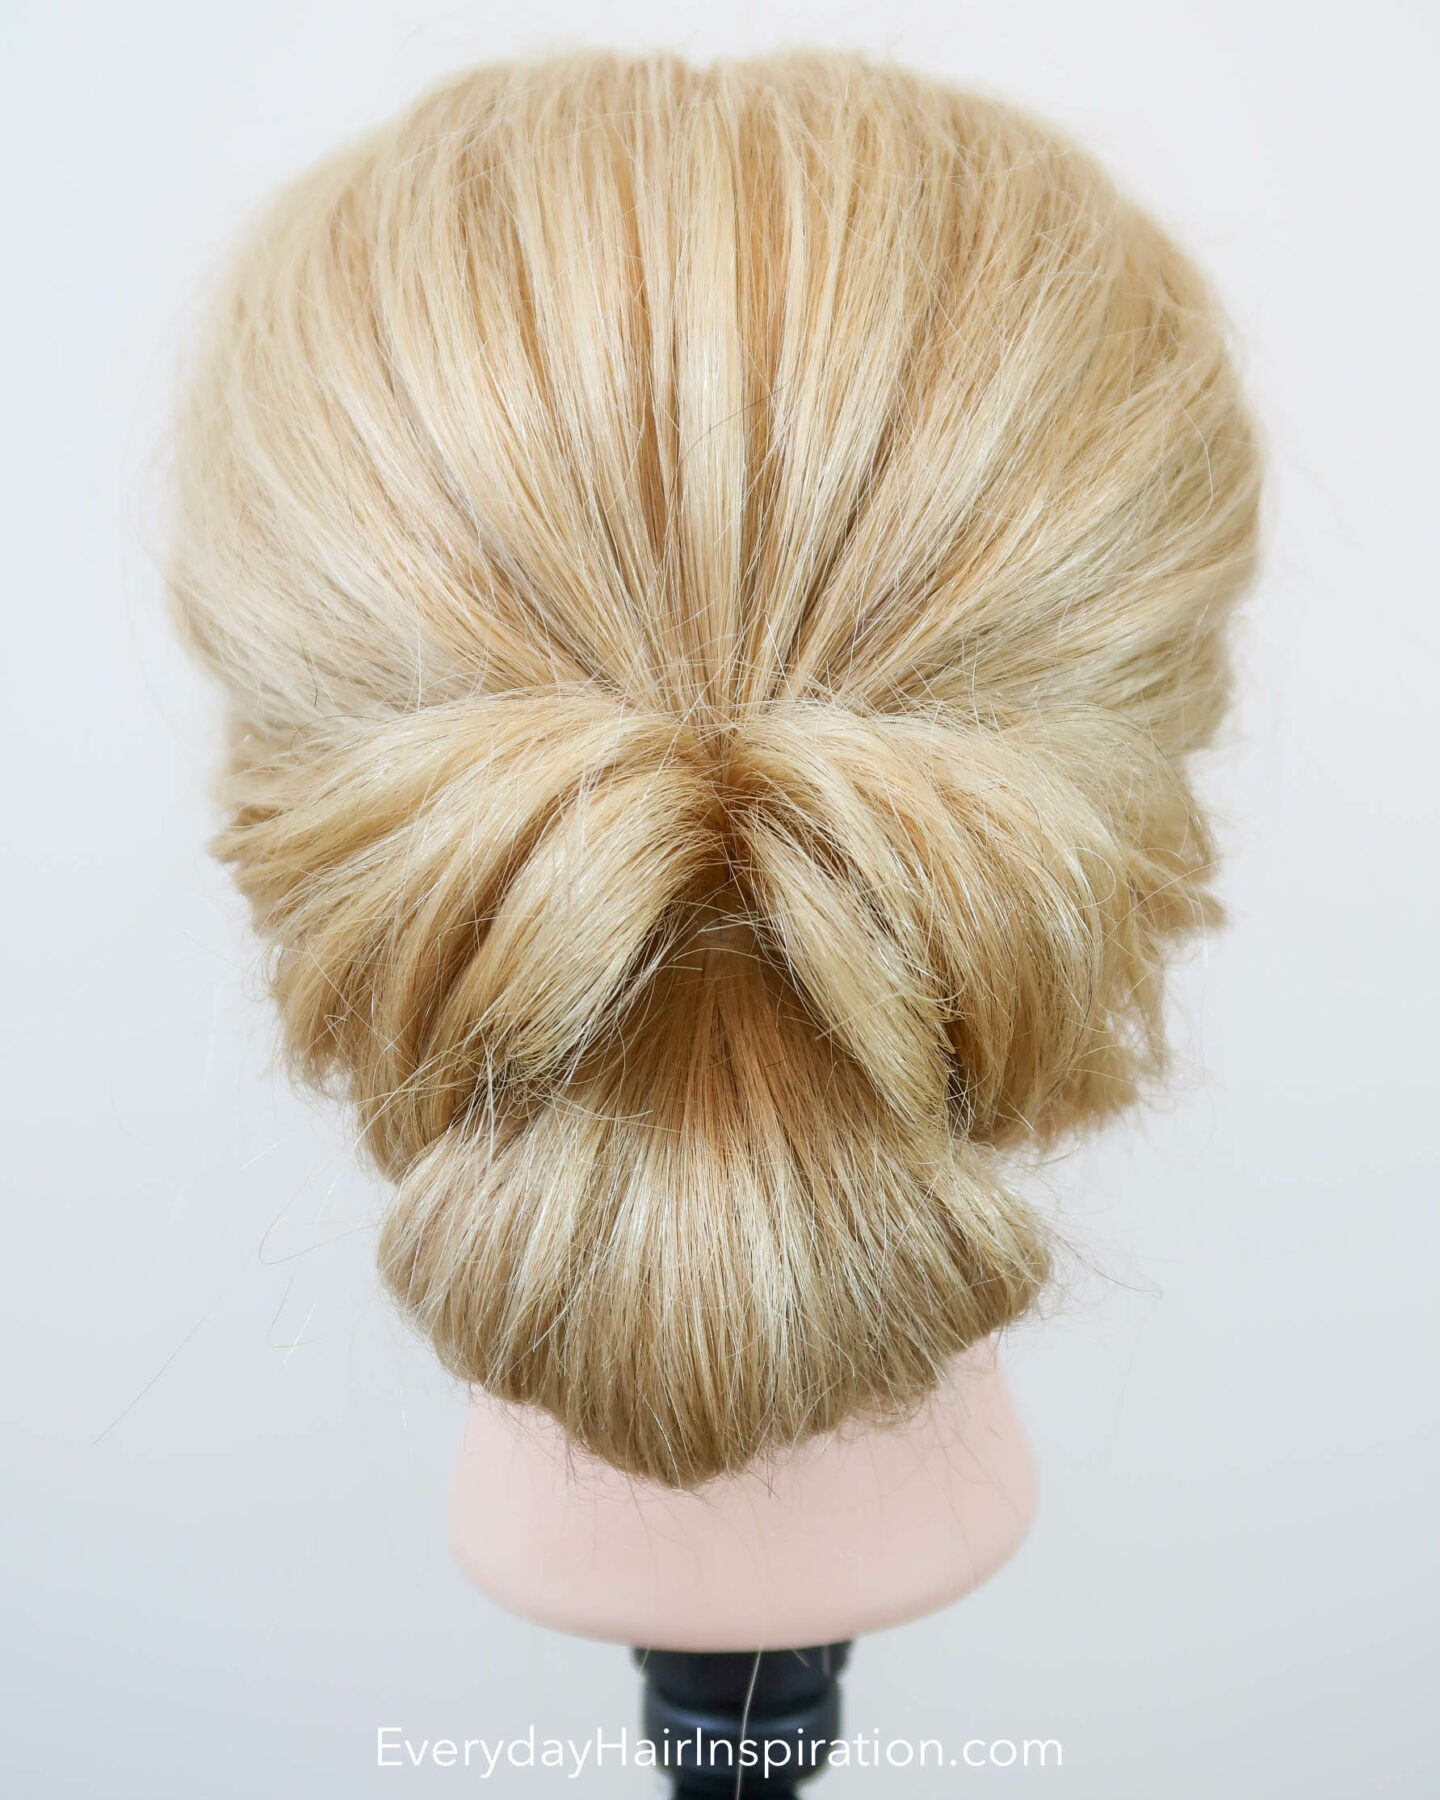 Hairdresser head with a twisted bridal updo, seen from the back.